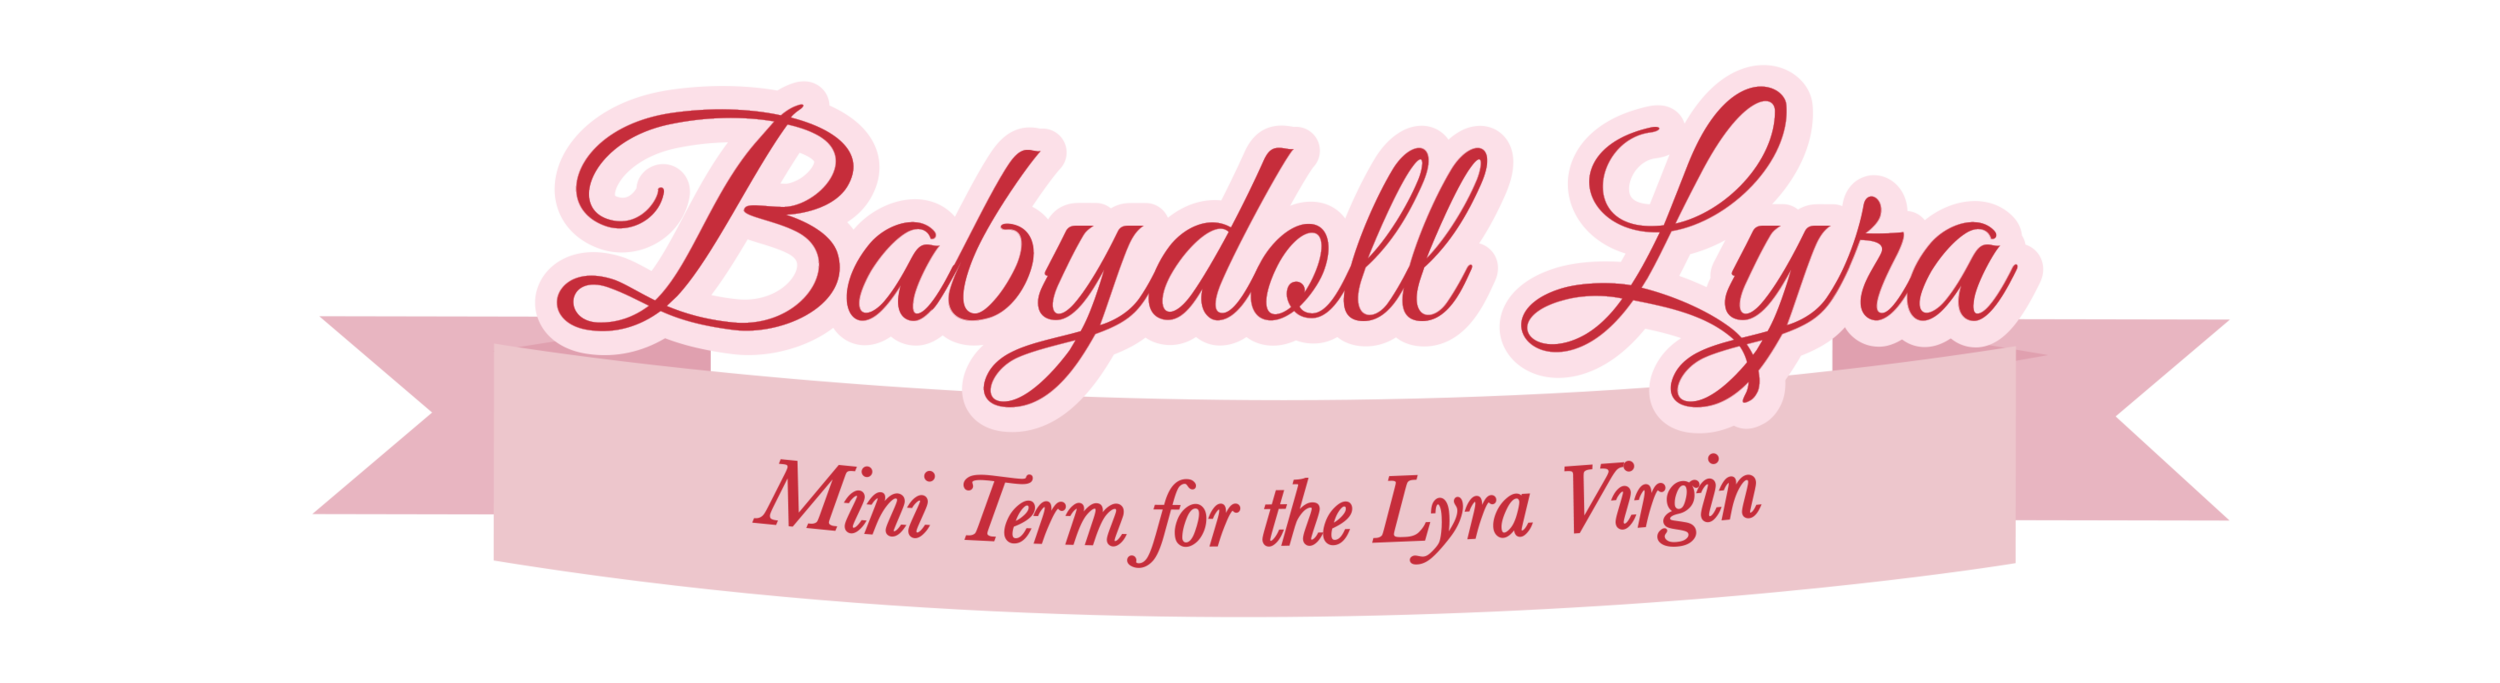 babydoll-banner.png